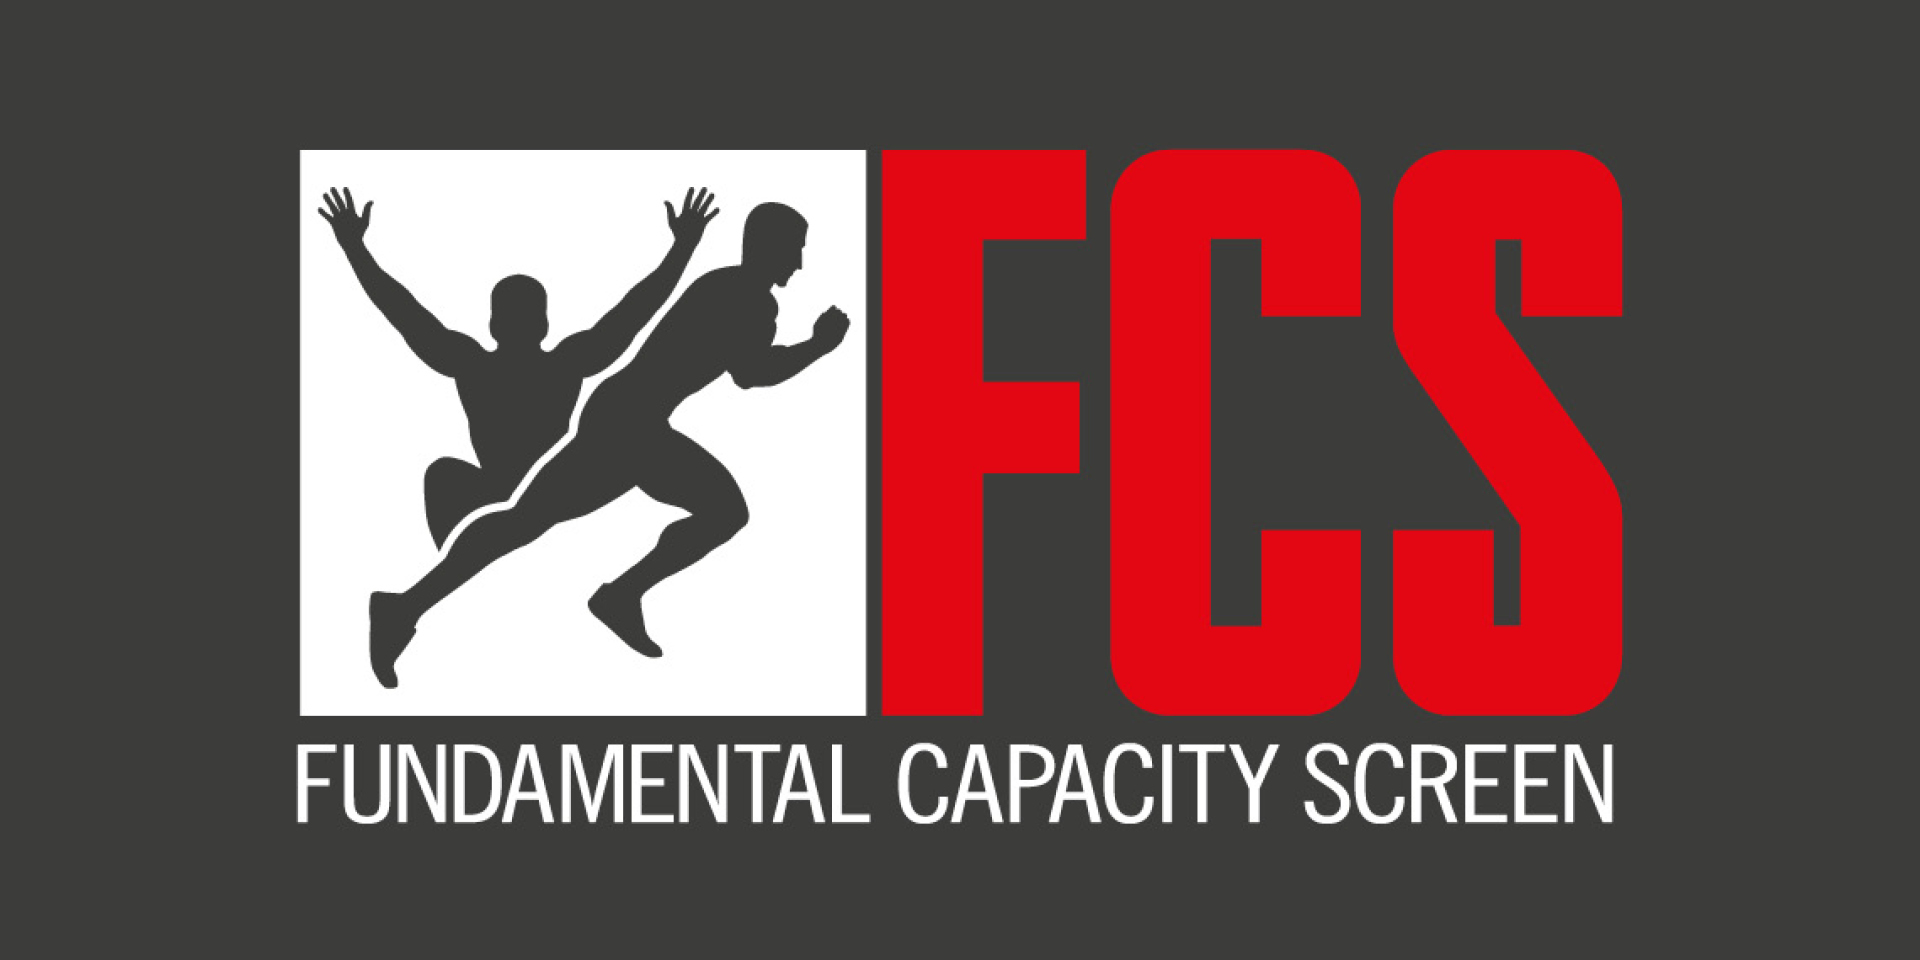 FCS - Fundamental Capacity Screen